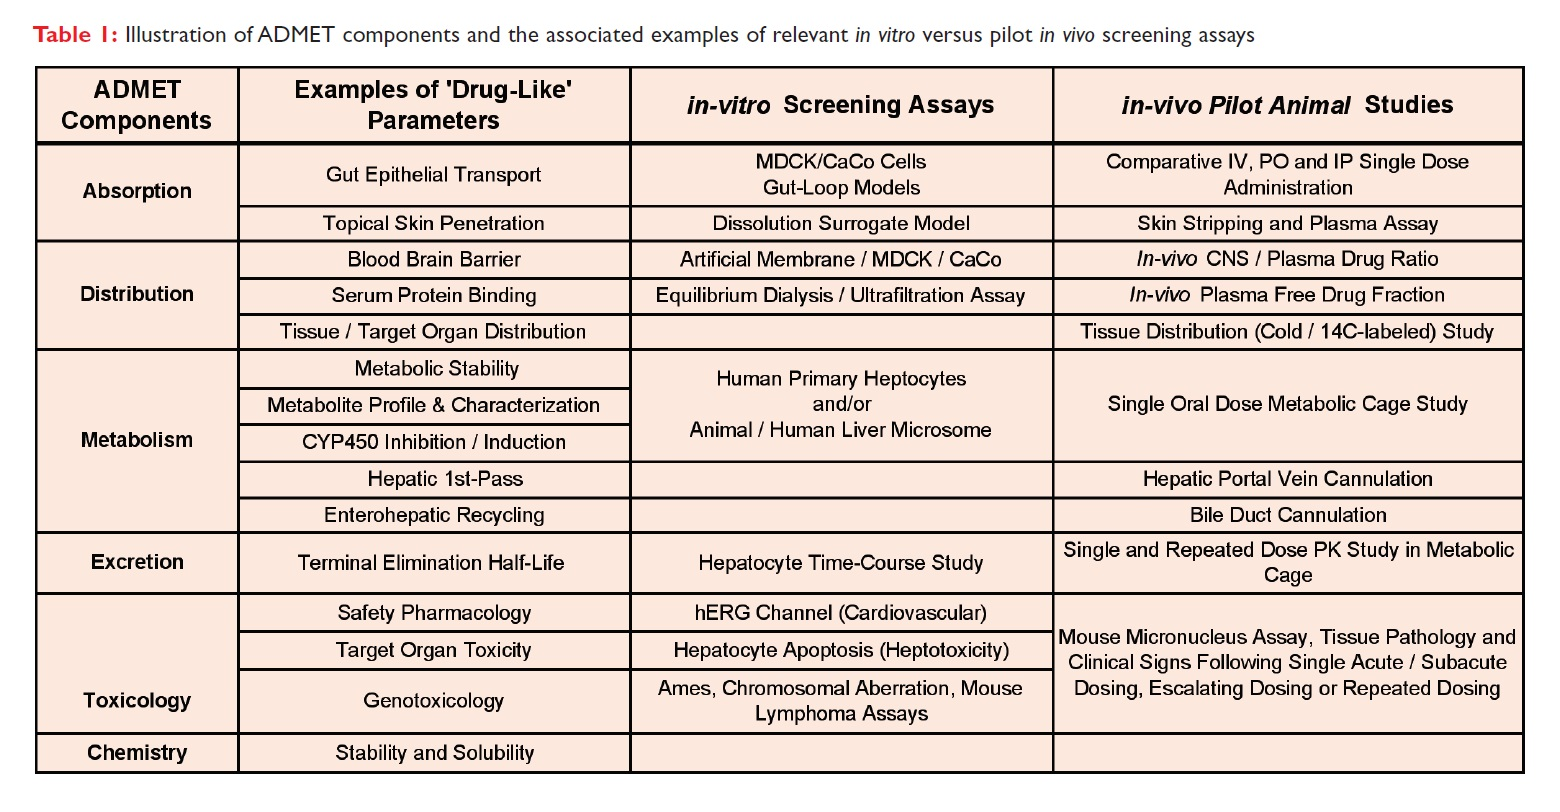 Table 1 Illustration of ADMET components and the associated examples of relevant in vitro versus pilot in vivo screening assays